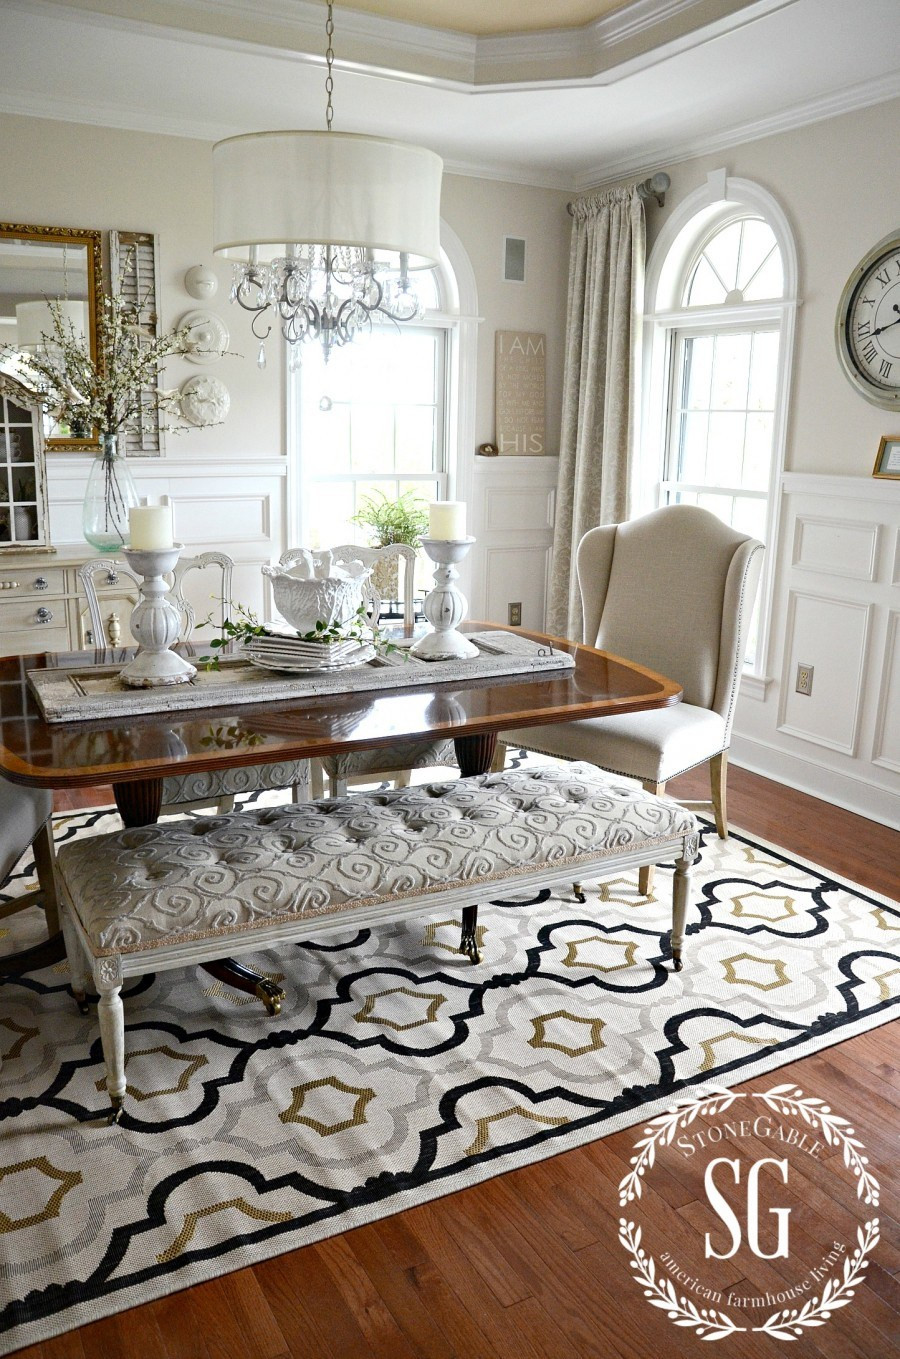 Best ideas about Dining Room Rug . Save or Pin 5 RULES FOR CHOOSING THE PERFECT DINING ROOM RUG StoneGable Now.